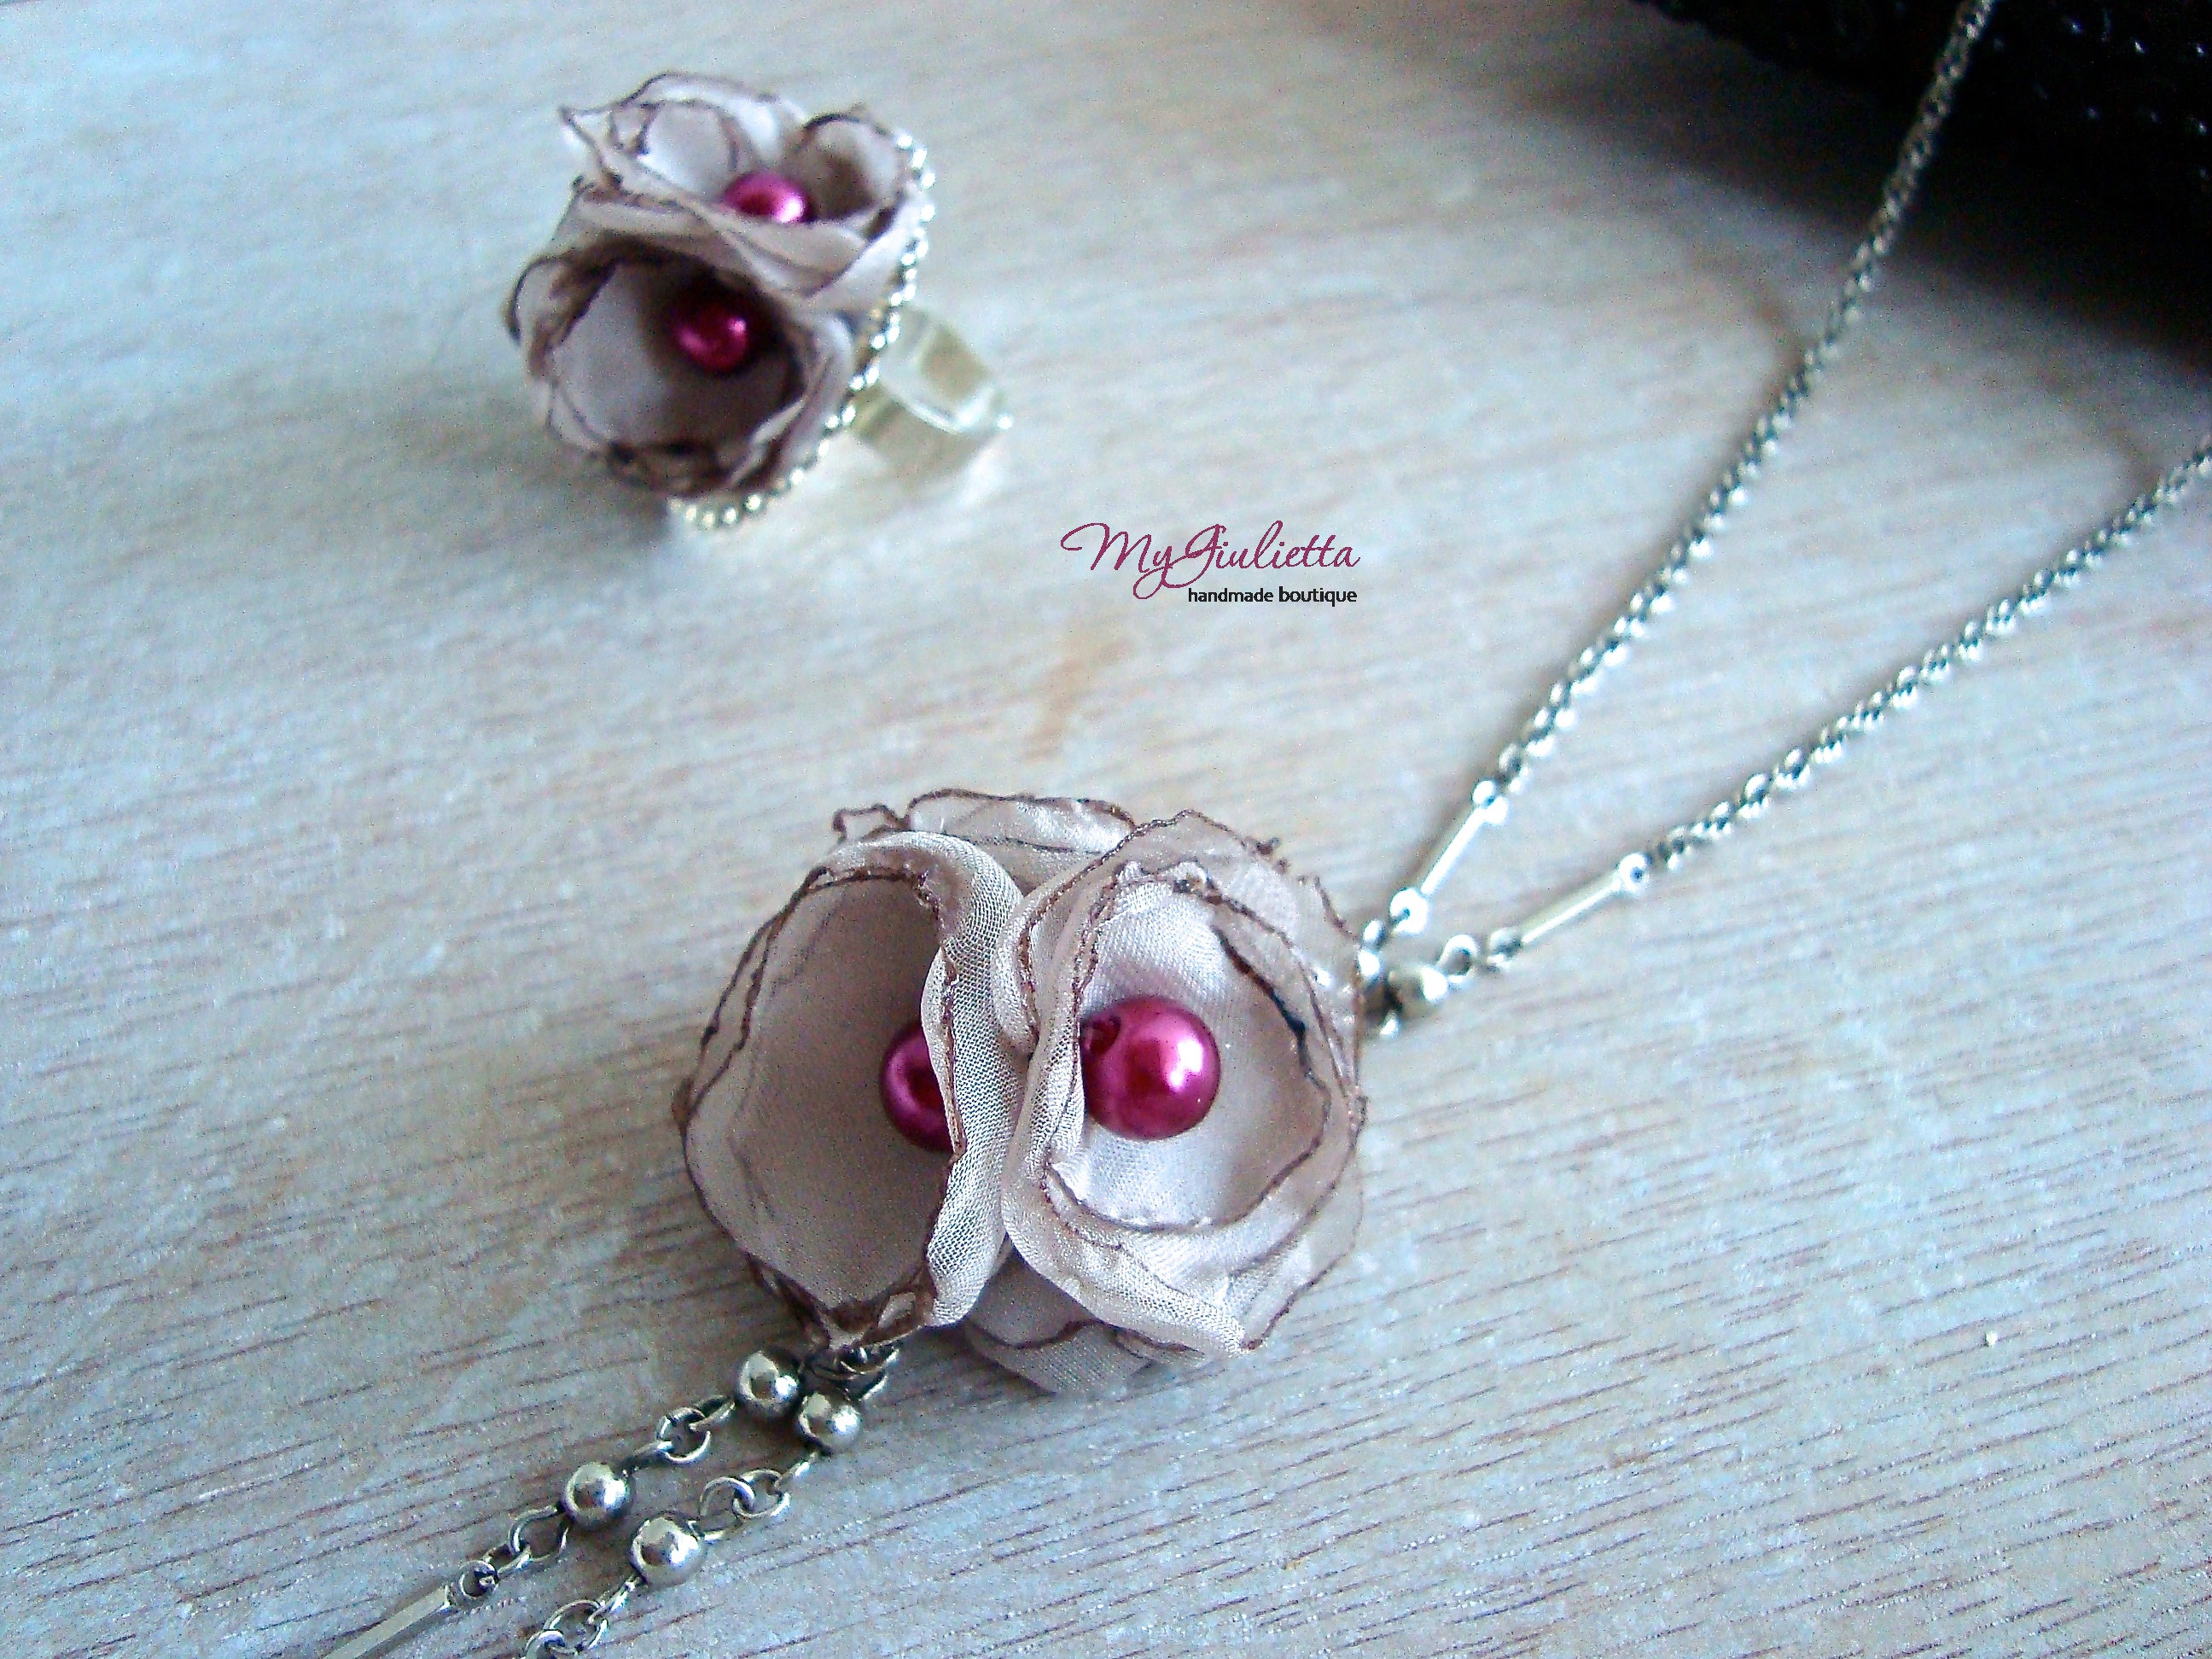 fabric madeheart cute handmade woolen elegant com product unusual accessory necklace en textile jewelry